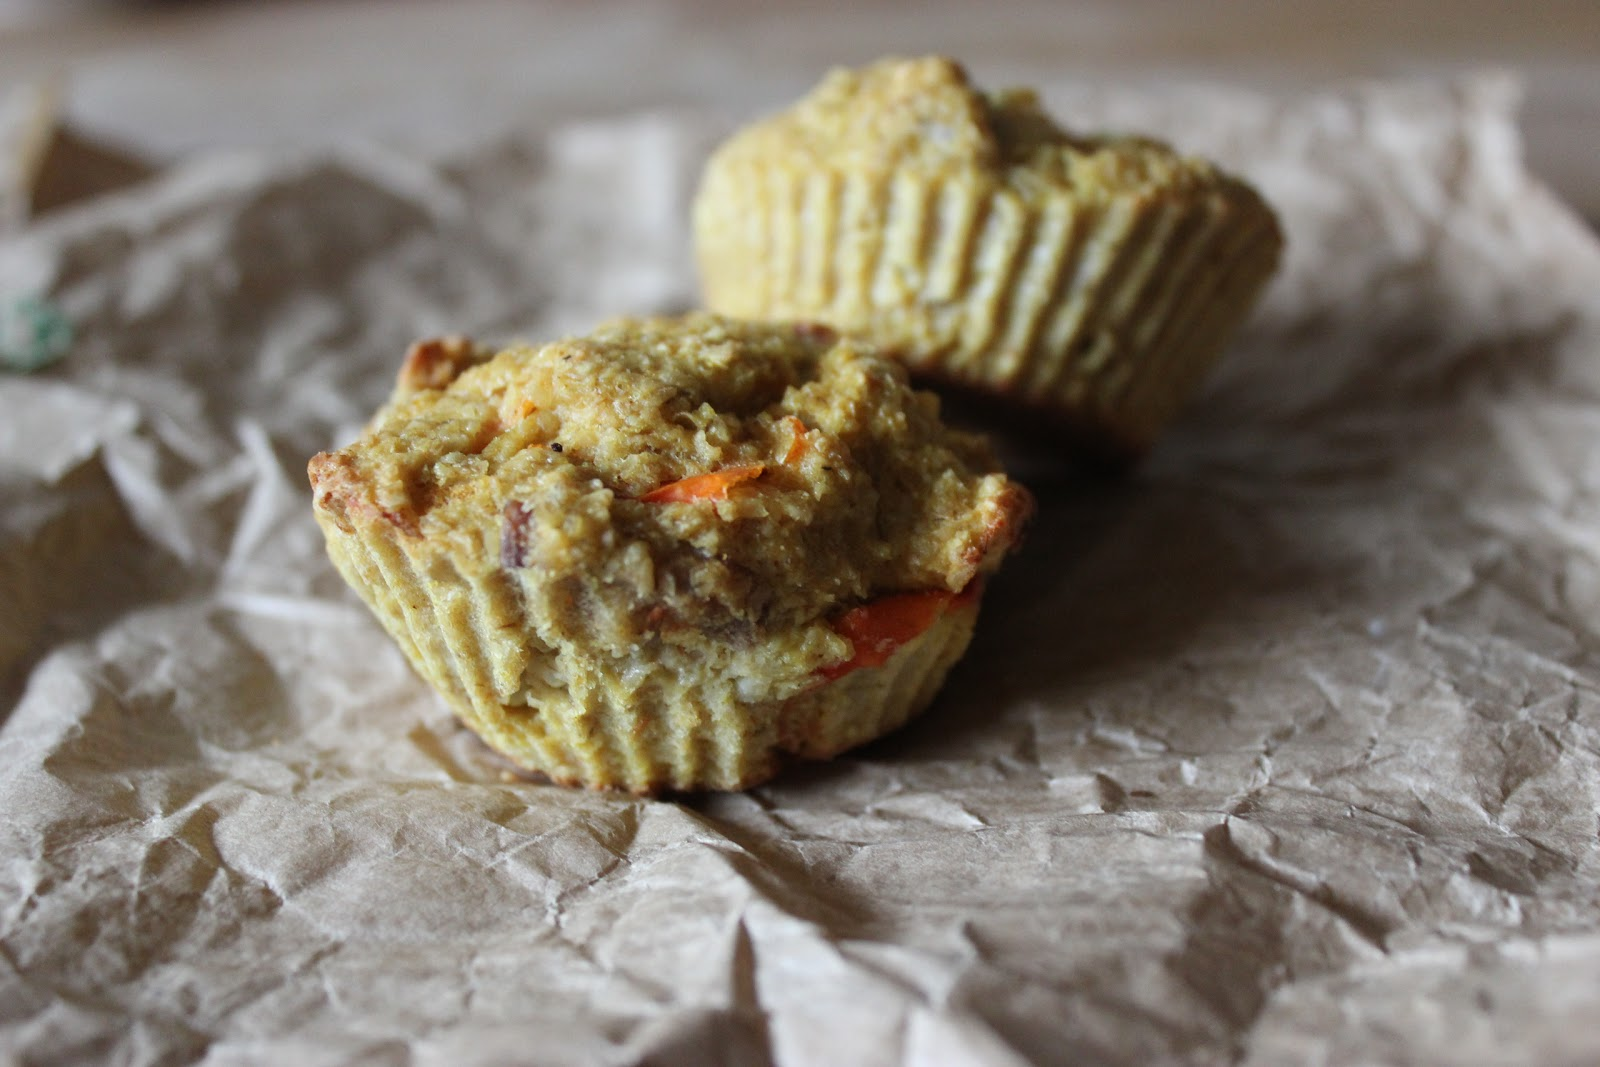 https://cuillereetsaladier.blogspot.com/2013/01/muffins-facon-dukan-thon-tomates-curry.html